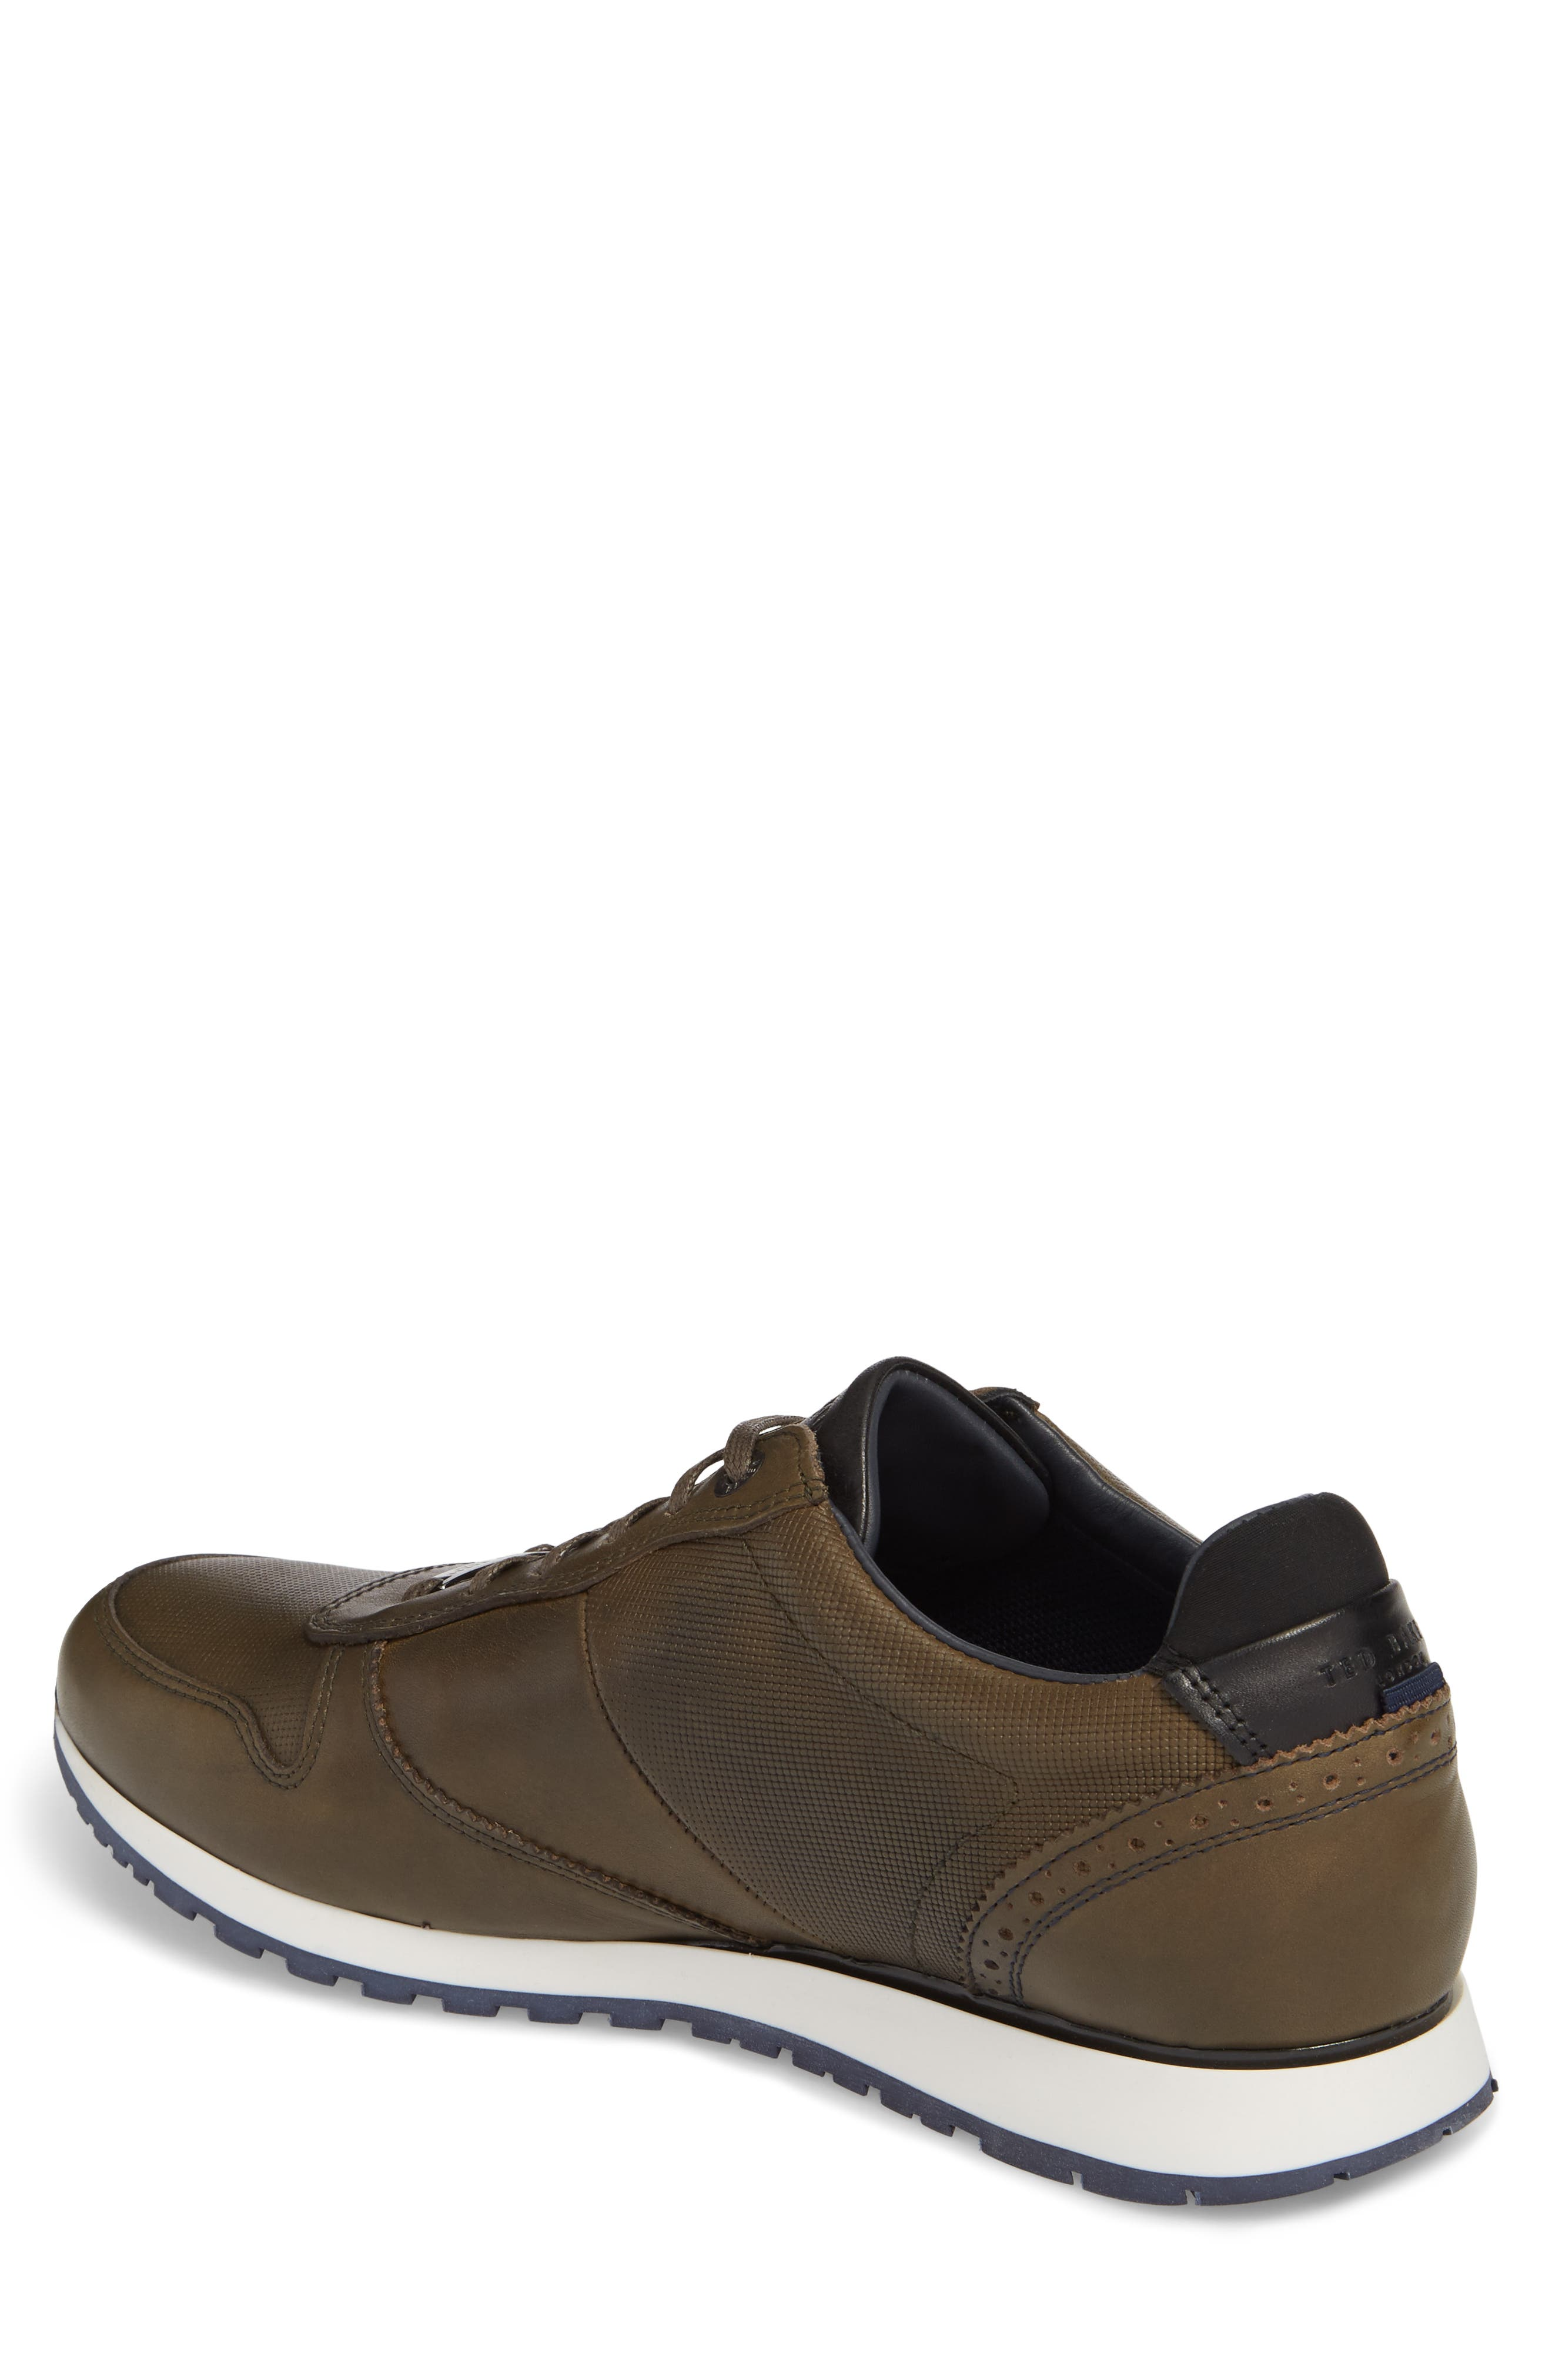 Alternate Image 2  - Ted Baker London Shindl Sneaker (Men)